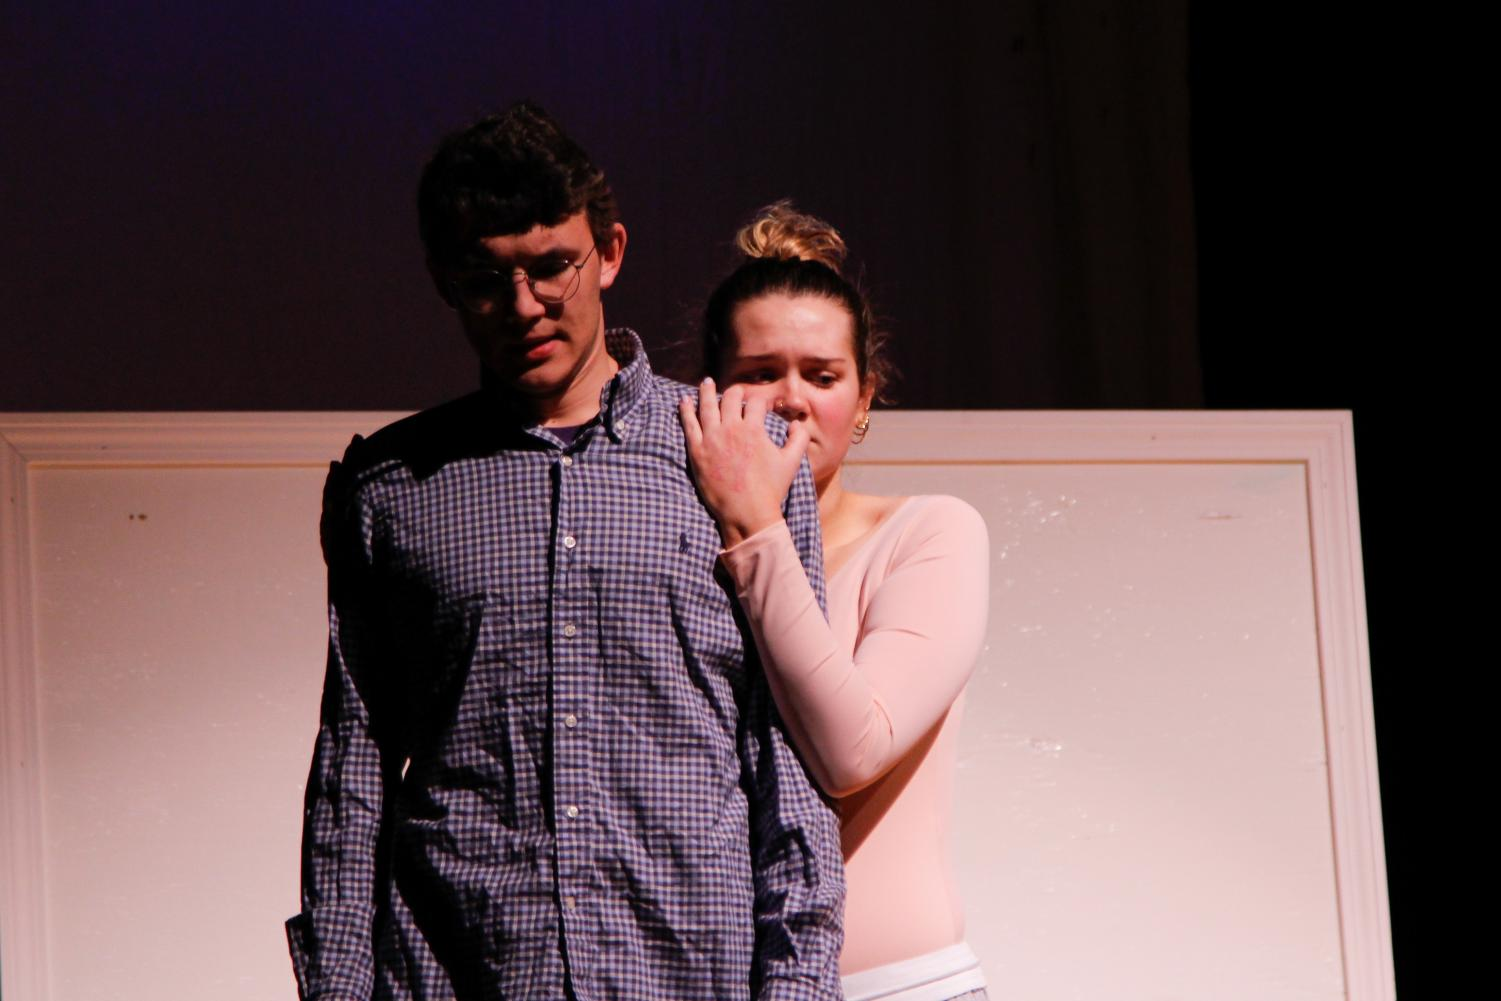 Ophelia (Senior Casey Hussey) embraces Jeb (Senior Andersson Perry) after a vulnerable moment.